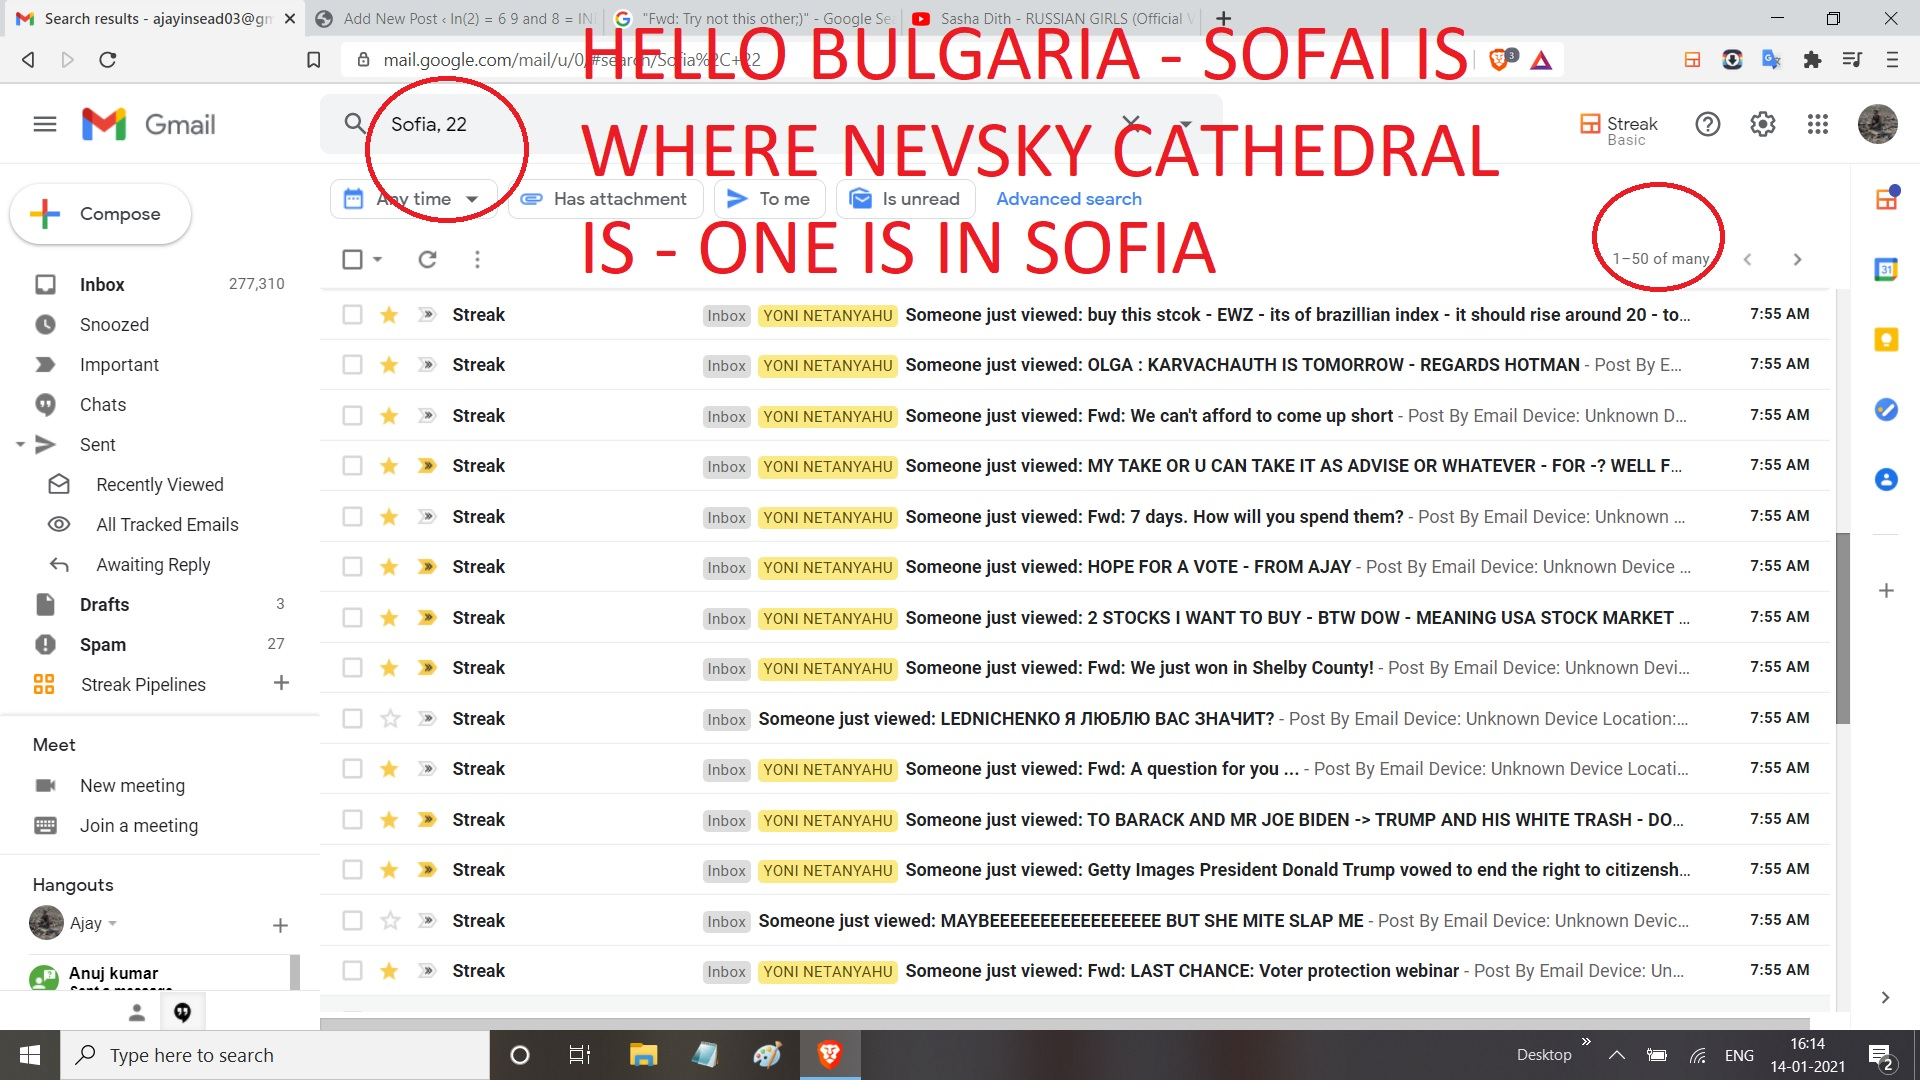 HELLO BULGARIA - SOFAI IS WHERE NEVSKY CATHEDRAL IS - ONE IS IN SOFIA